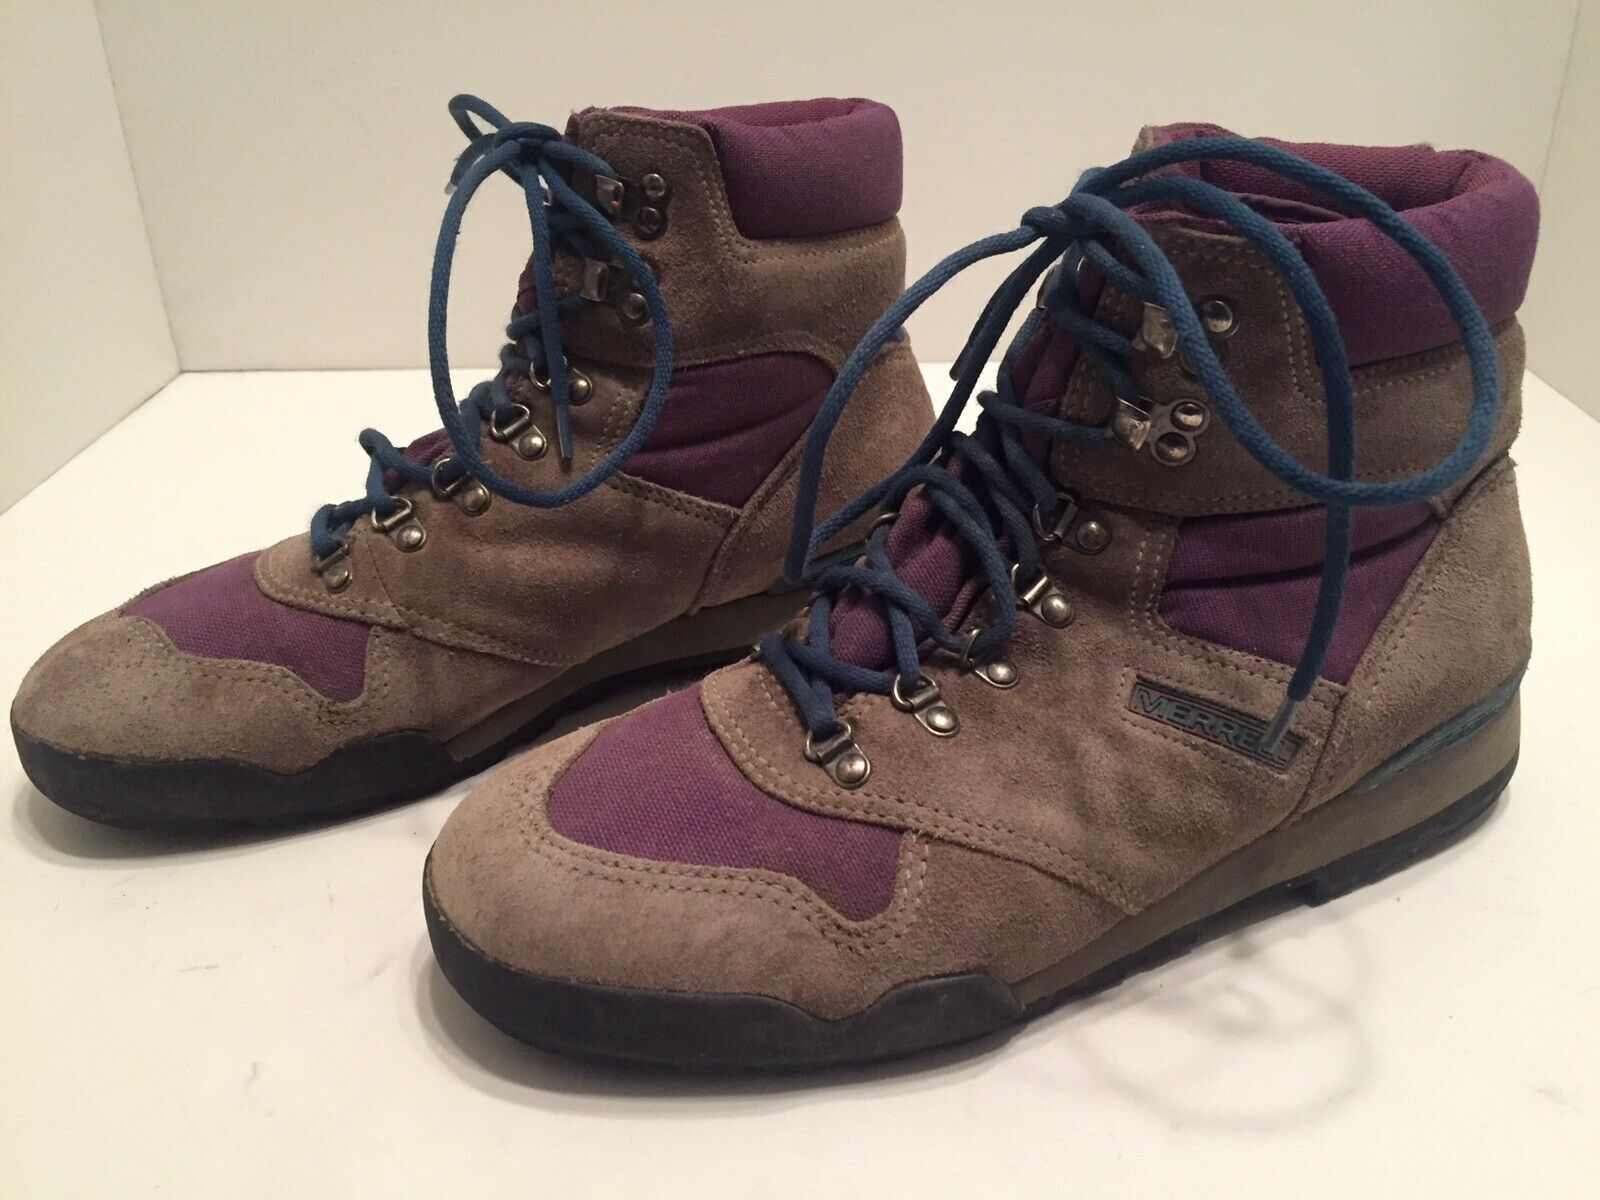 Merrell Spectrum Womens Brown Suede Purple  Teal Lined Hiking Boots Size 11  free shipping & exchanges.